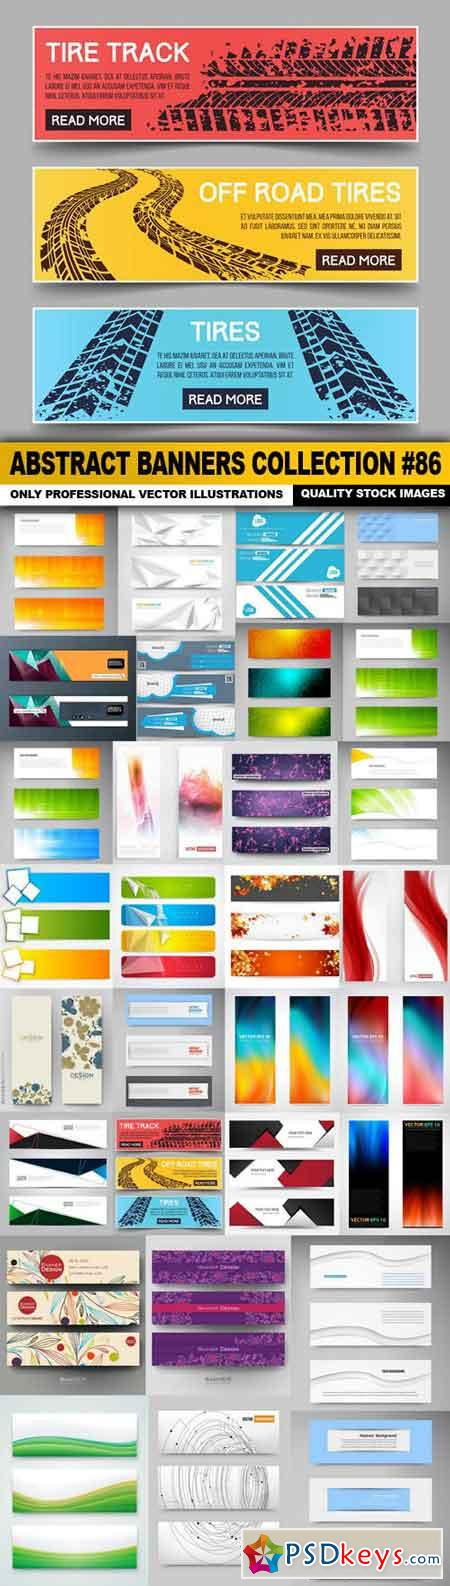 Abstract Banners Collection #86 - 30 Vectors